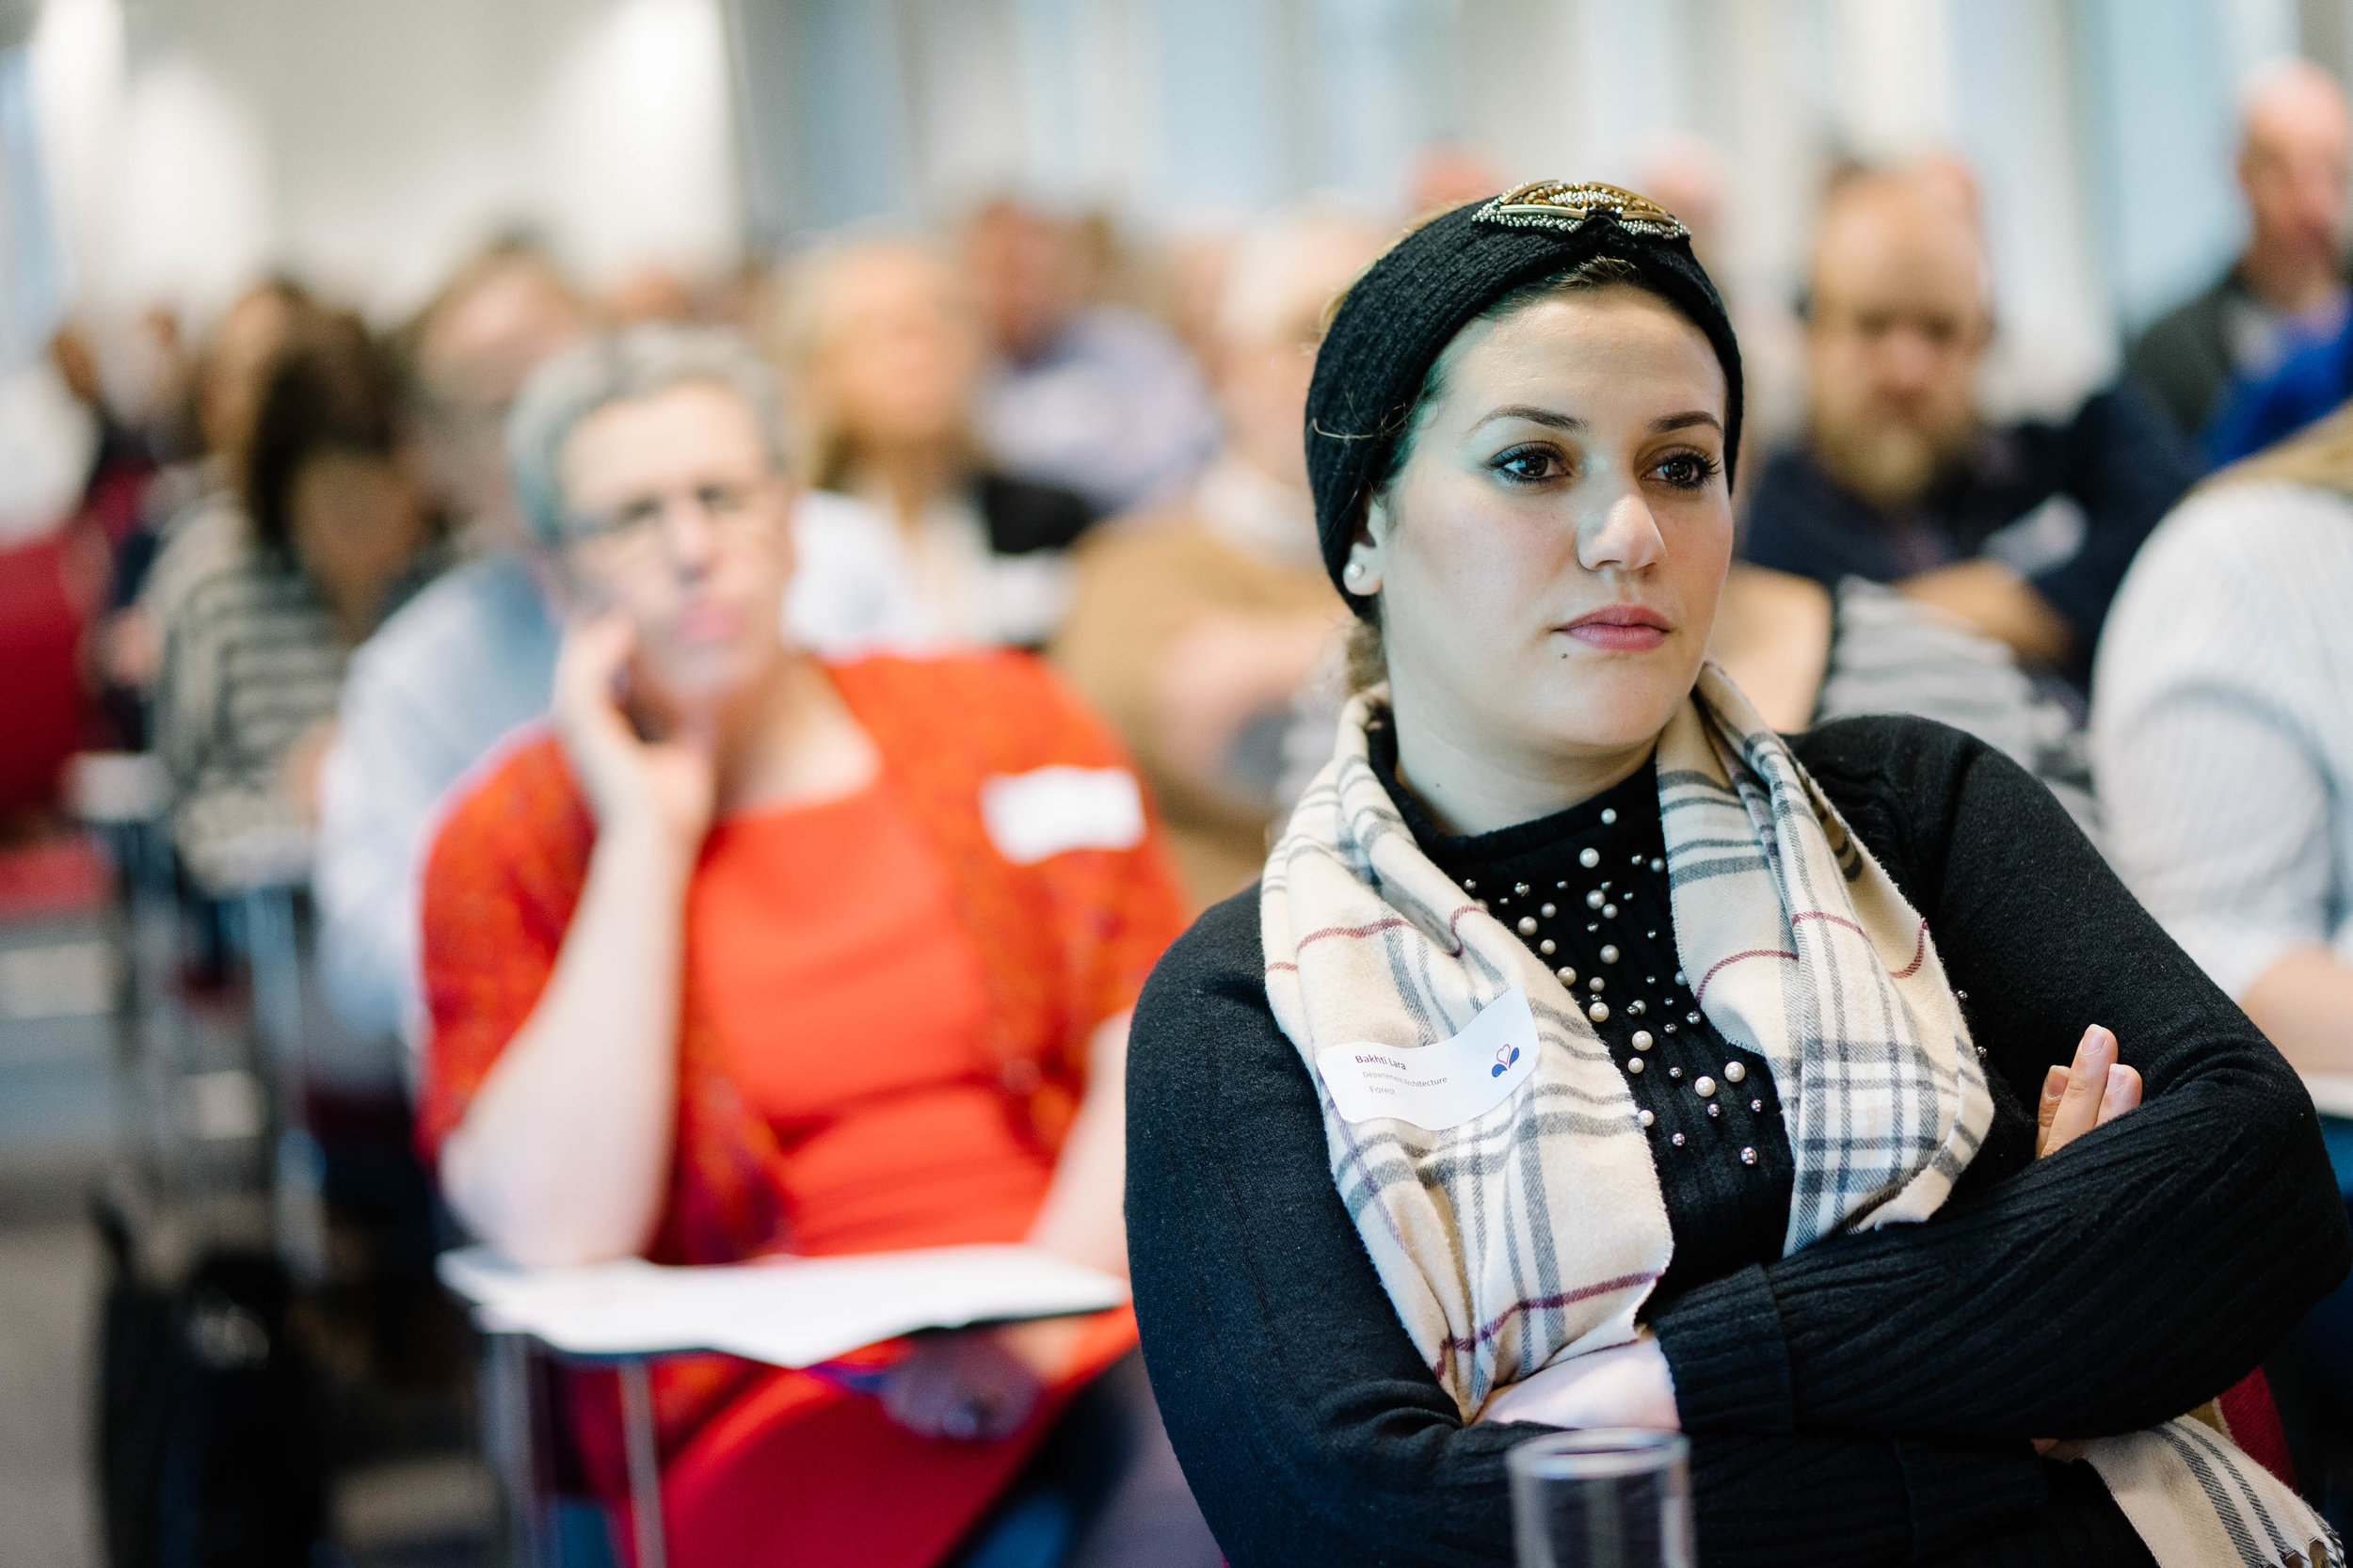 photographe-conference-bruxelles-corporate-13.jpg